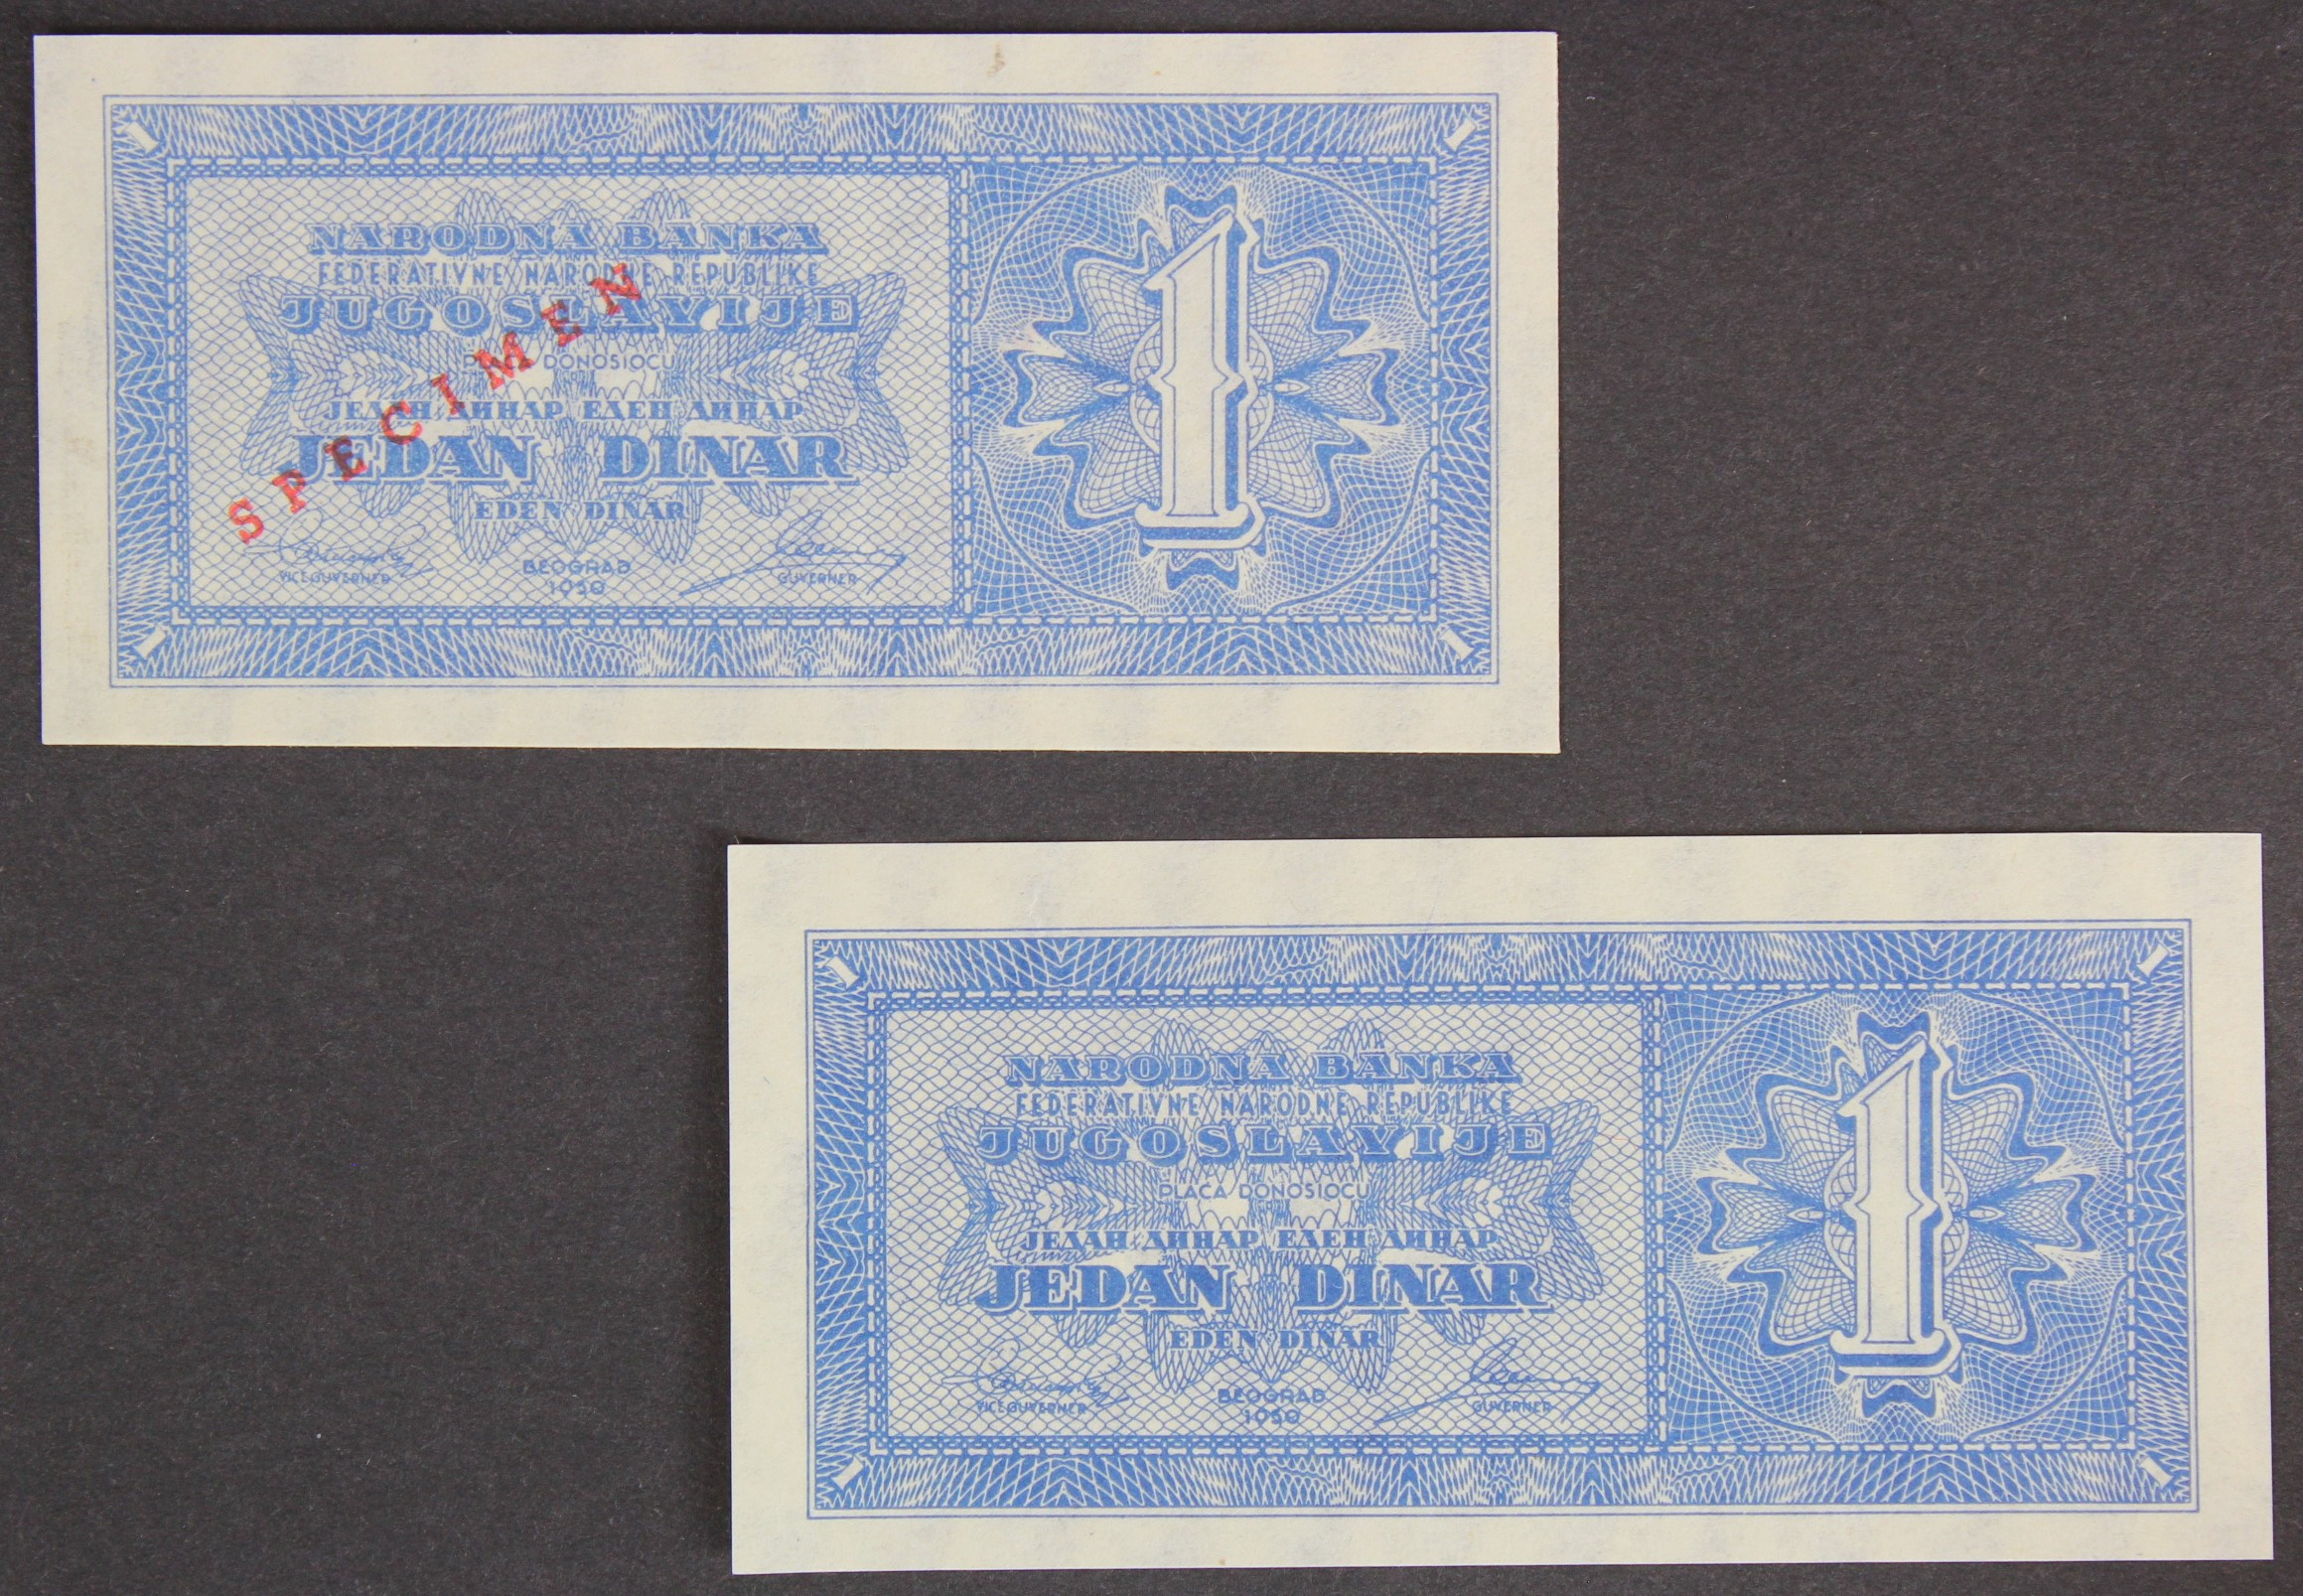 Yugoslavia (2), 1 Dinara dated 1950, a SPECIMEN note and an unissued note without serial numbers (